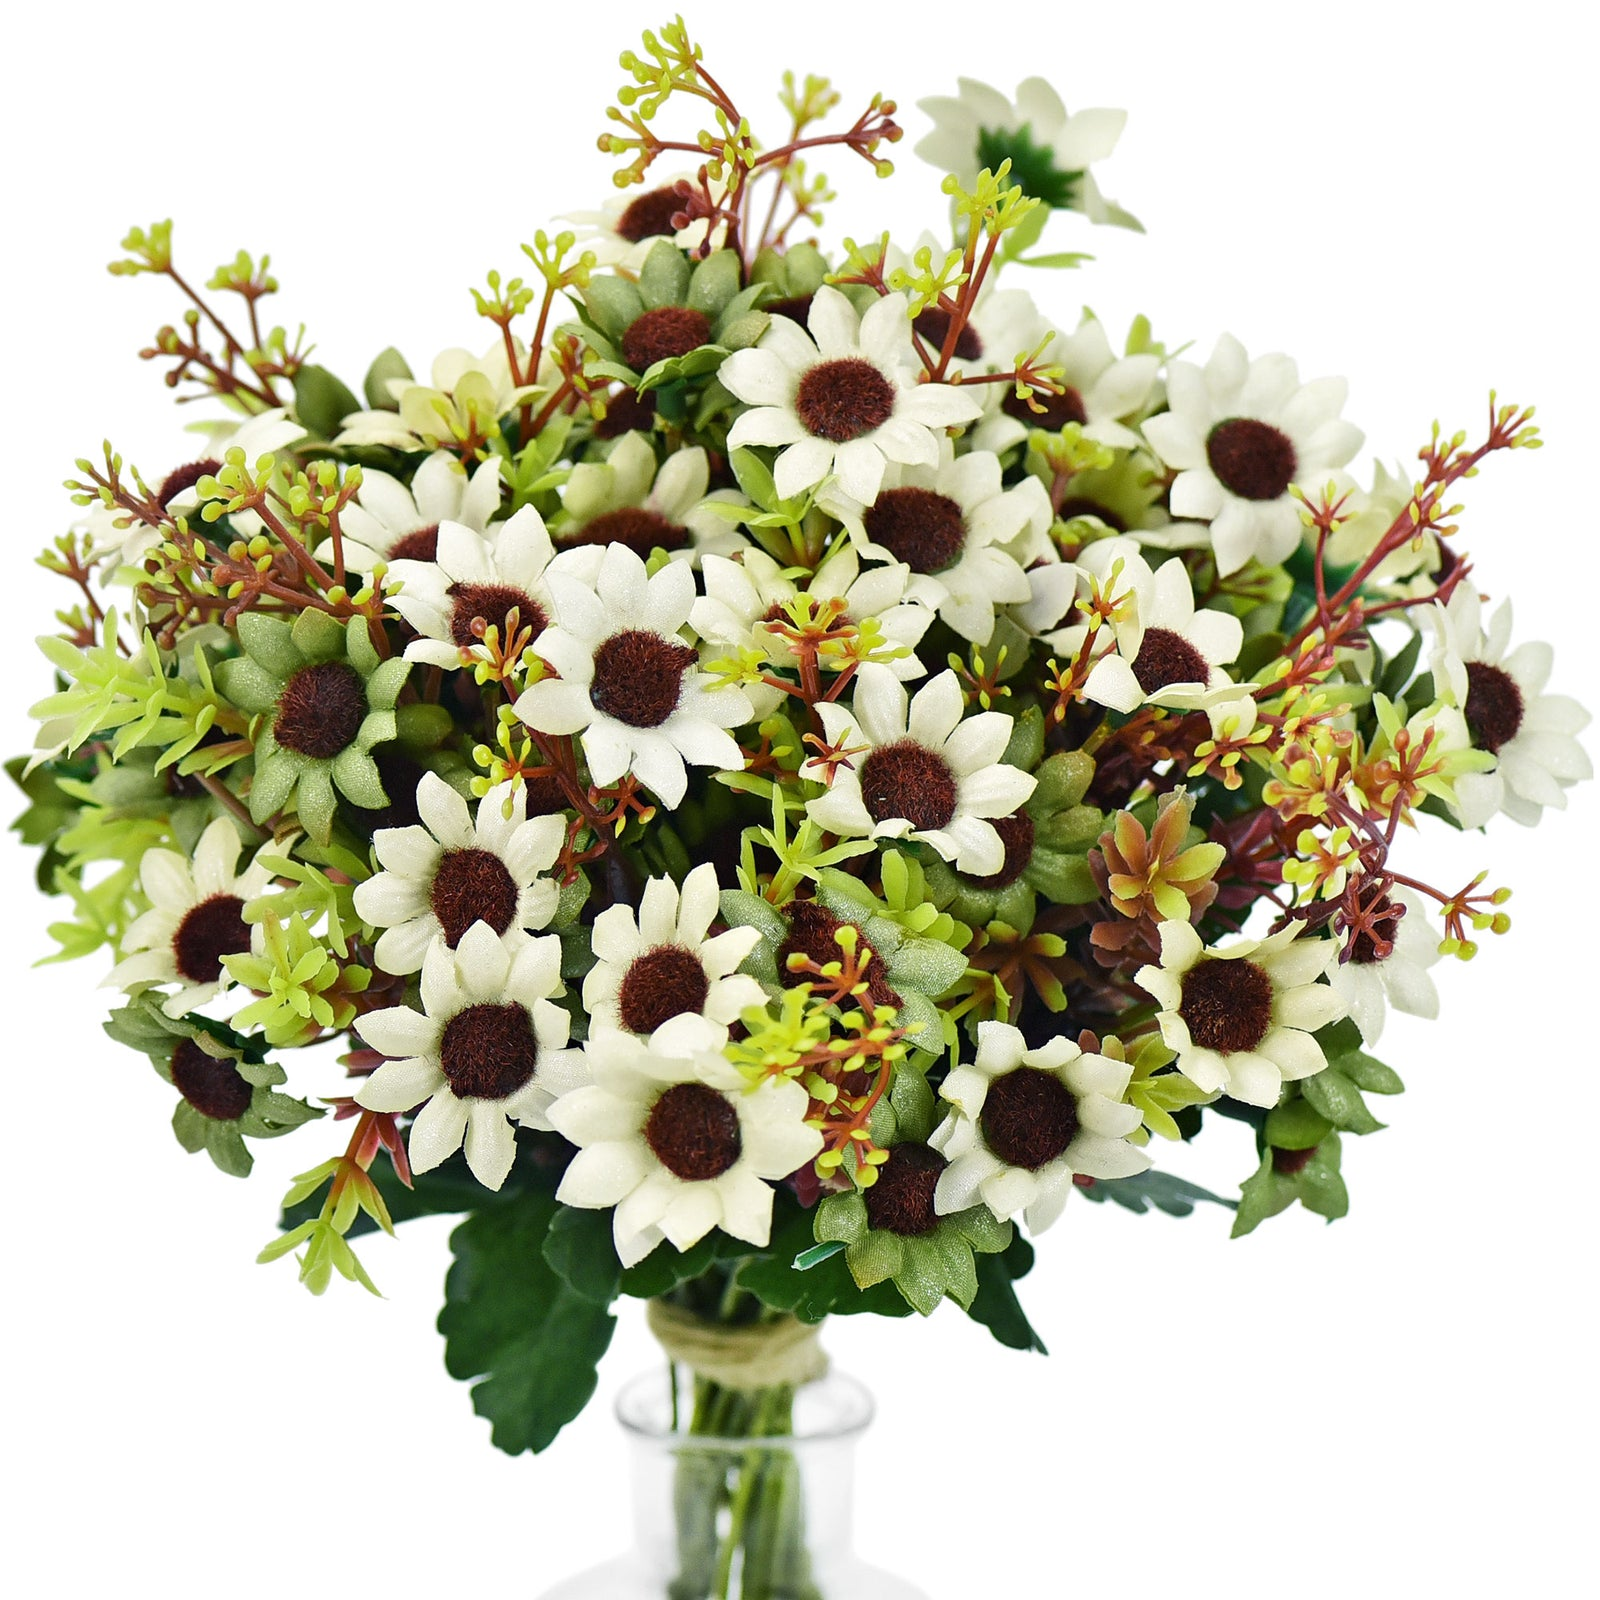 FiveSeasonStuff Daisy Silk Flowers, Outdoor Artificial Flowers Arrangement (4 Flower Bundles,) 13 inches Tall (White & Green Medley)